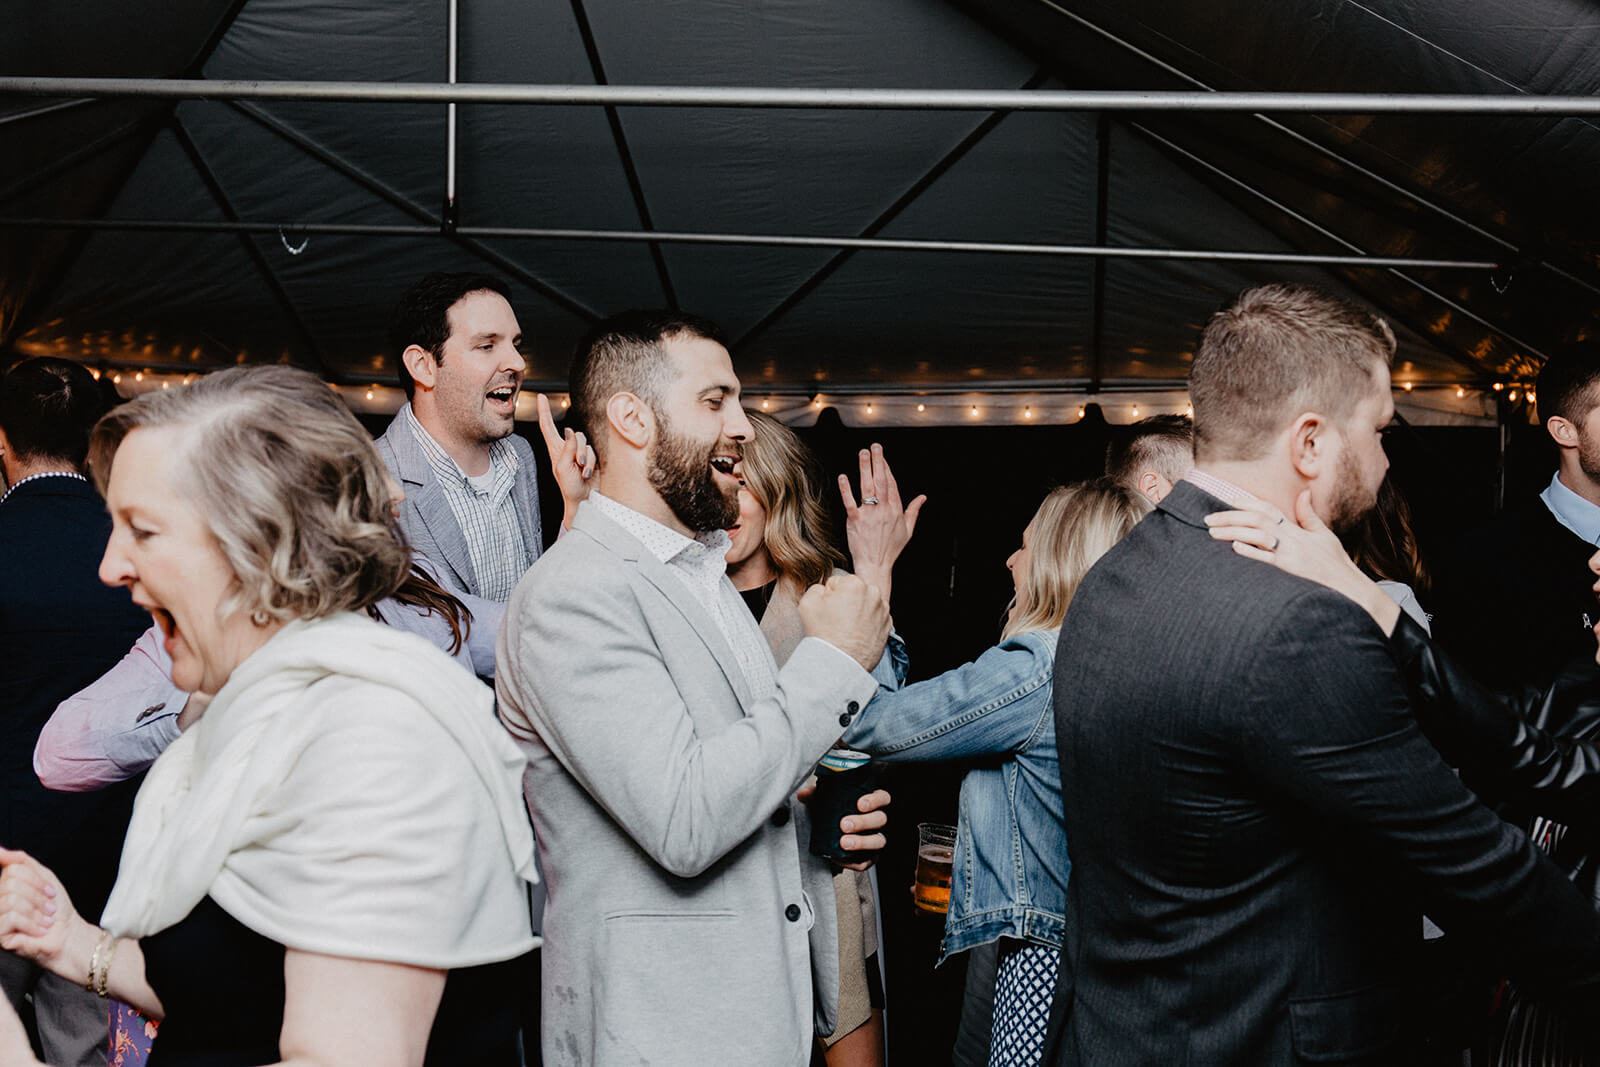 Alex + Lisi -- backyard Minnesota wedding -- Mads Lizotte photography -- Sixpence Events -- best lighting for dance photos in a tent.jpg